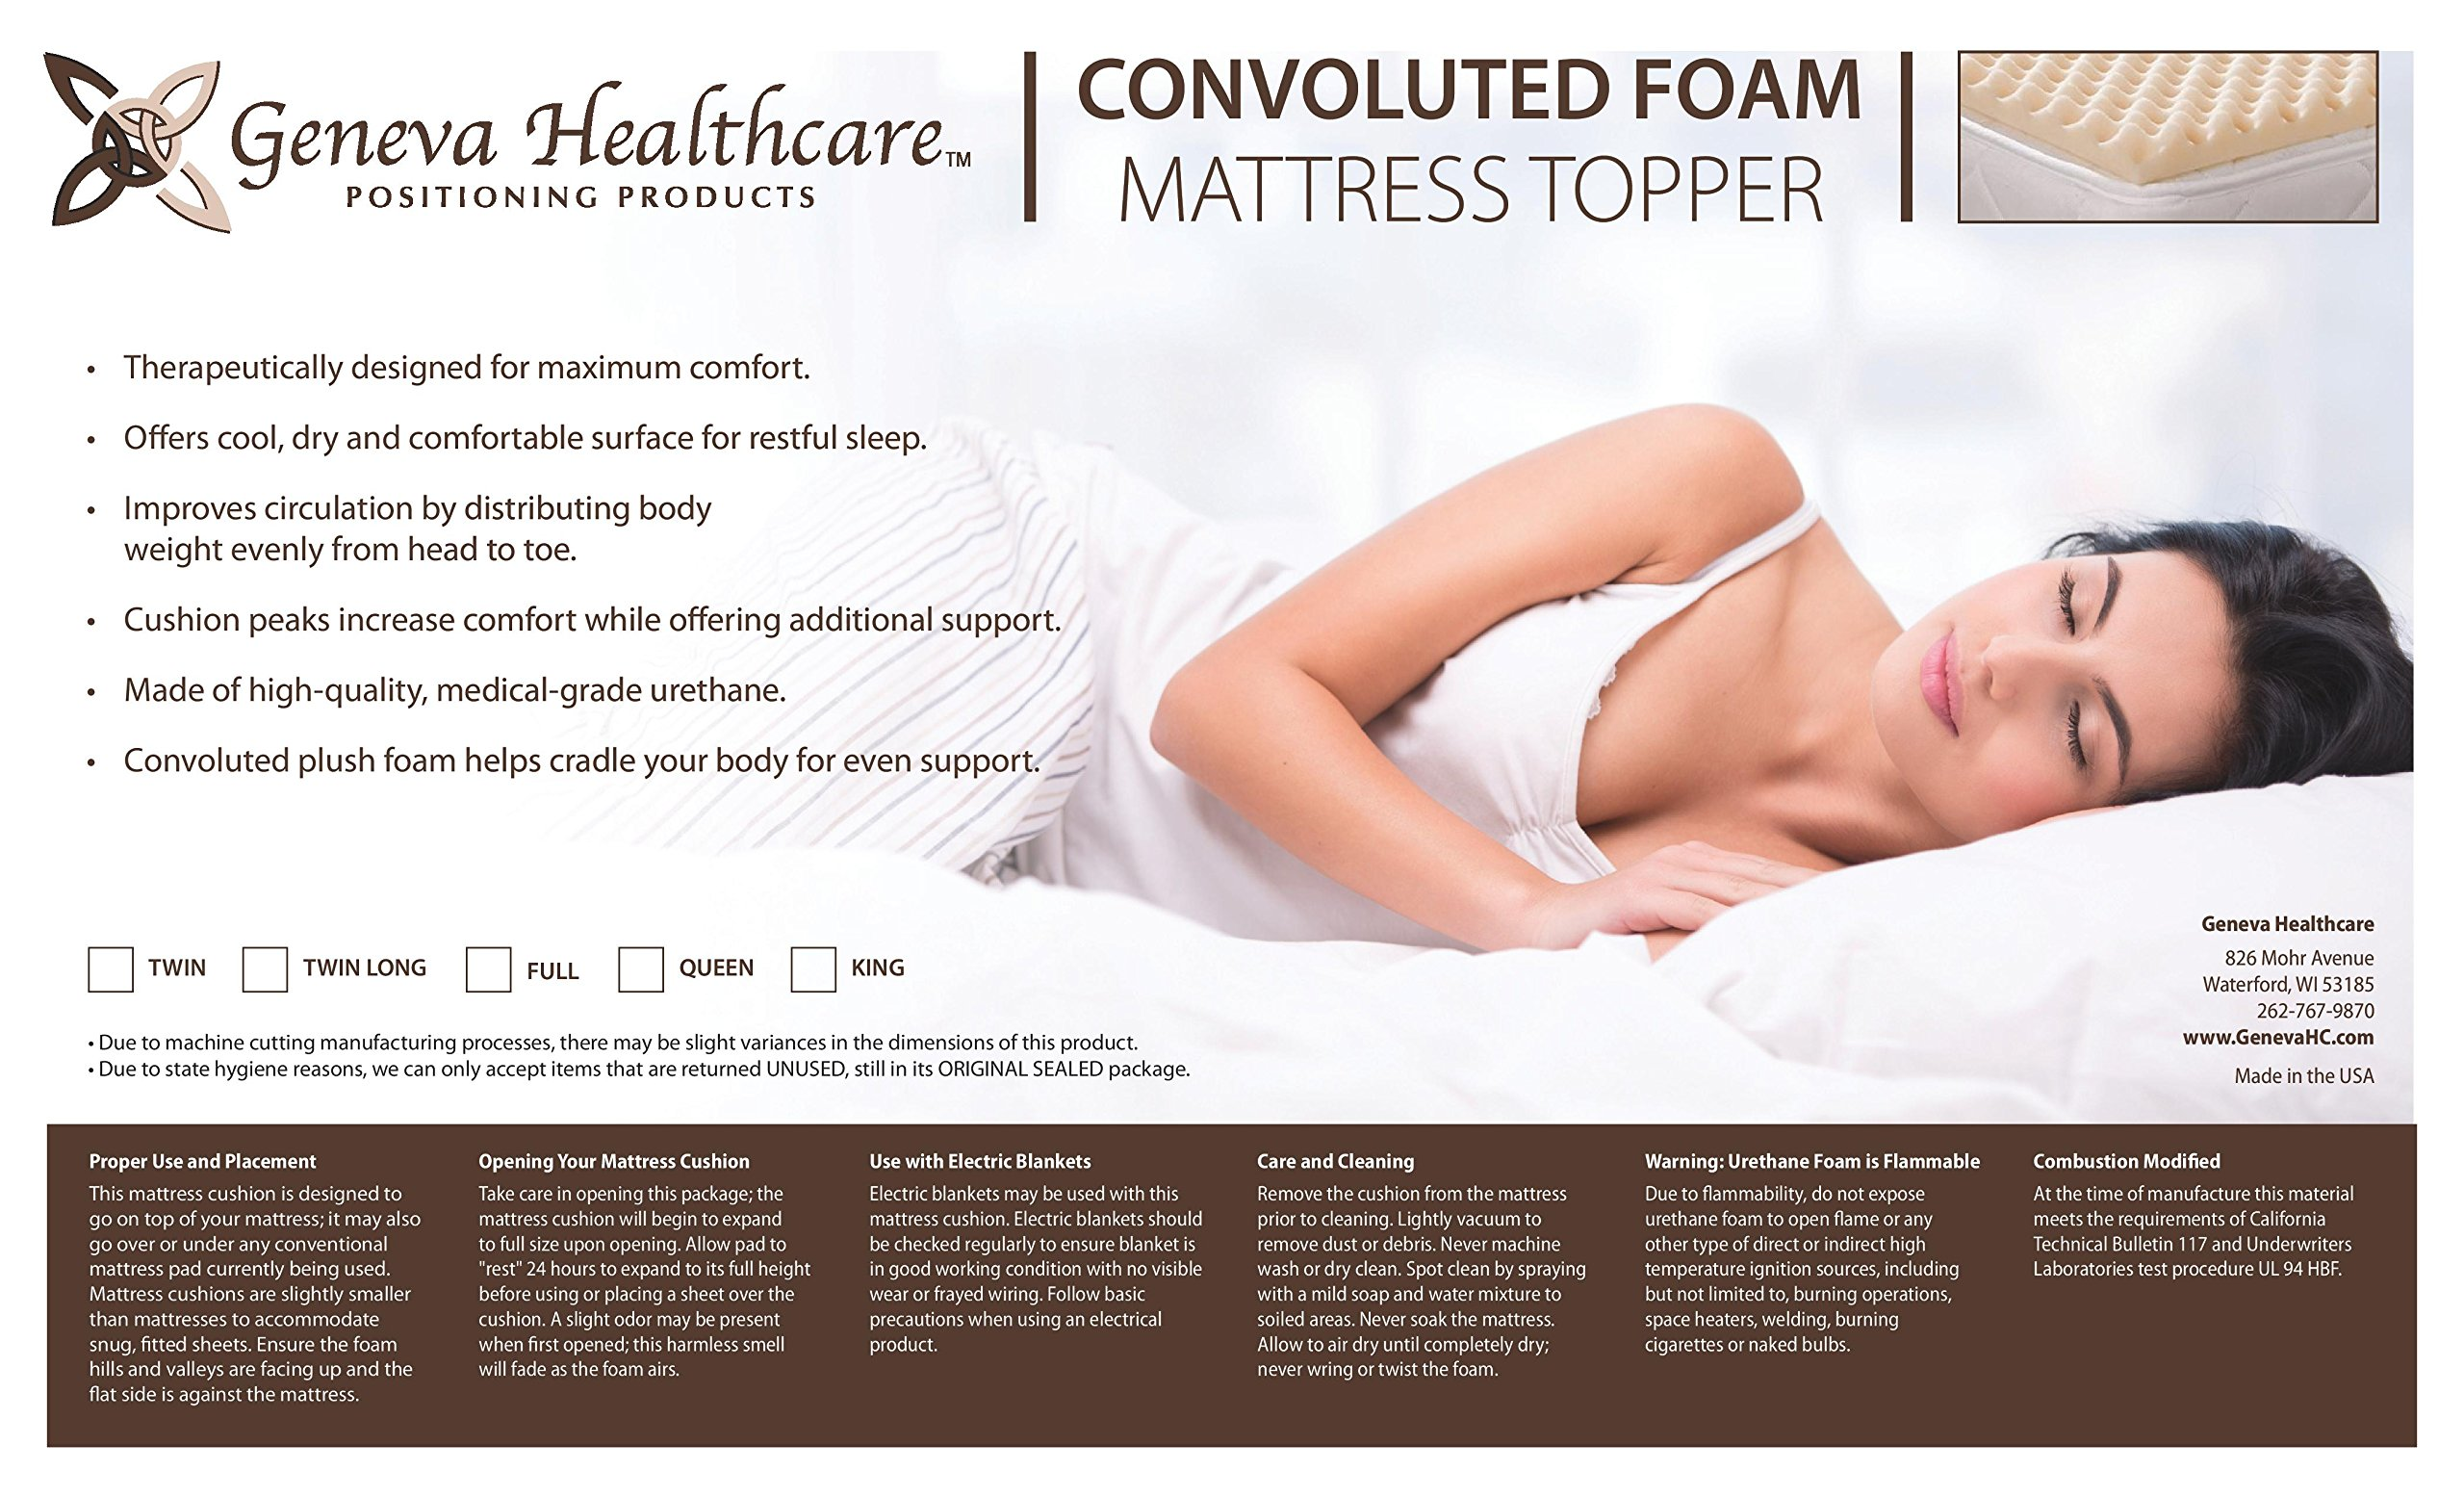 Geneva Healthcare Egg Crate Convoluted Foam Mattress Pad 4'' HOSPITAL Size Twin Topper - 4'' x 32'' x 73''